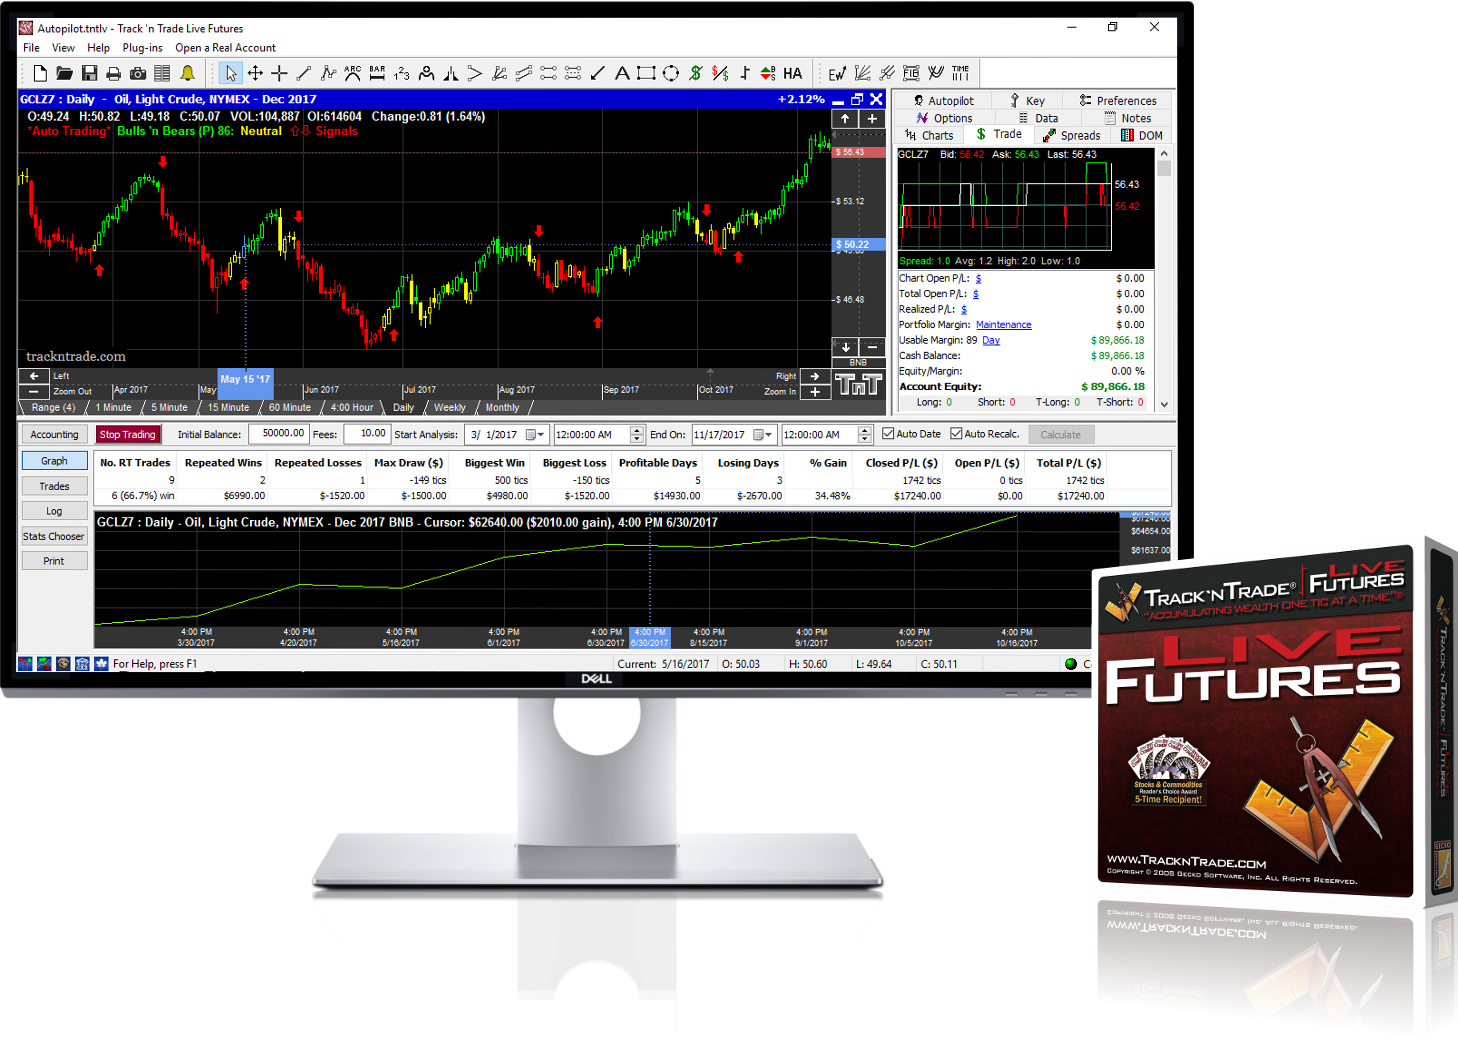 Track 'n Trade Live Futures and Commodities Trading Platform and Software